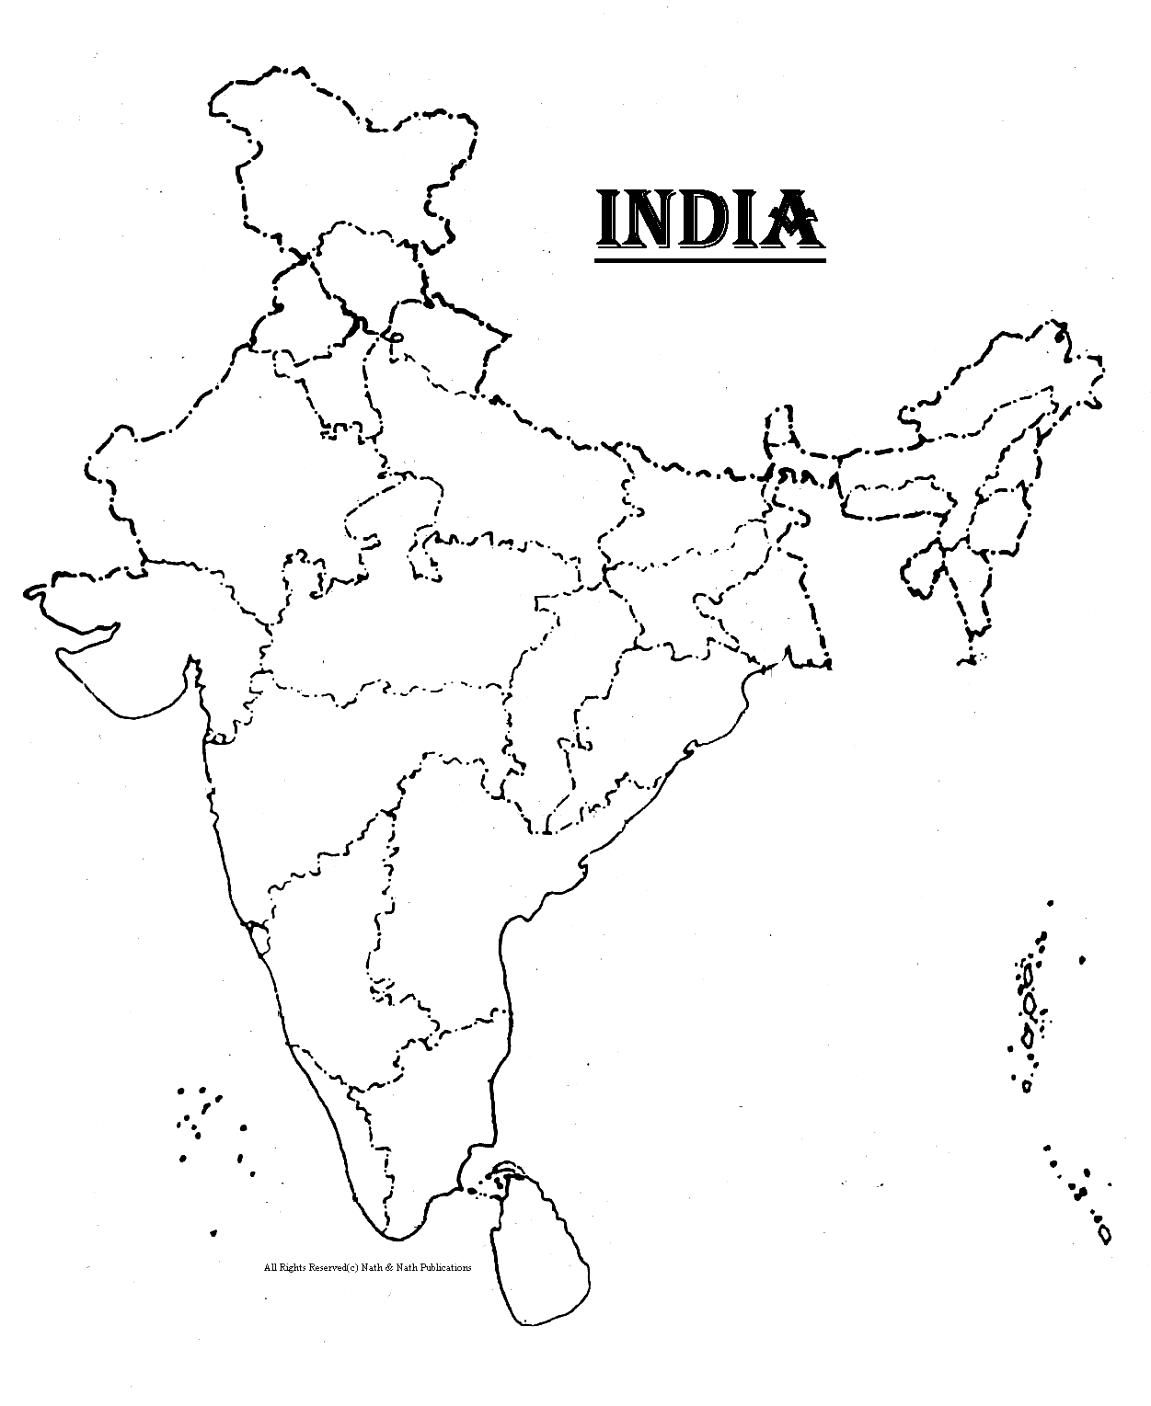 India map clipart black and white 3 » Clipart Station.